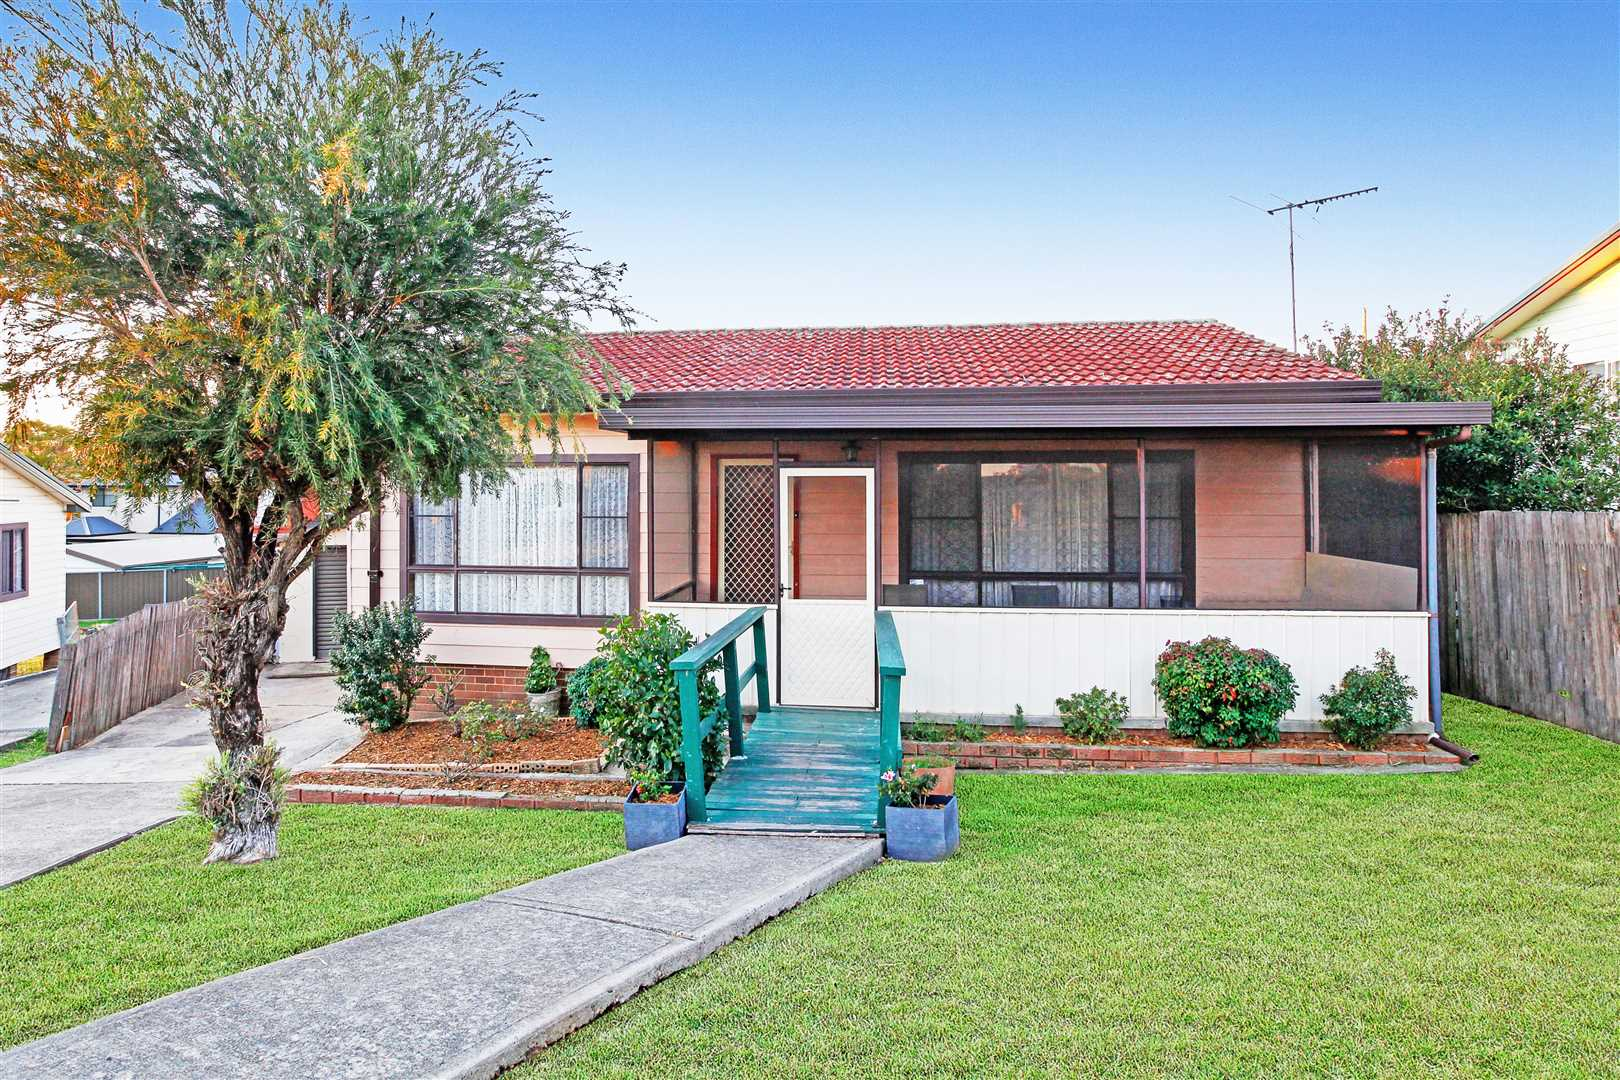 Walk To Station In South Blacktown - Home Plus Granny Flat!